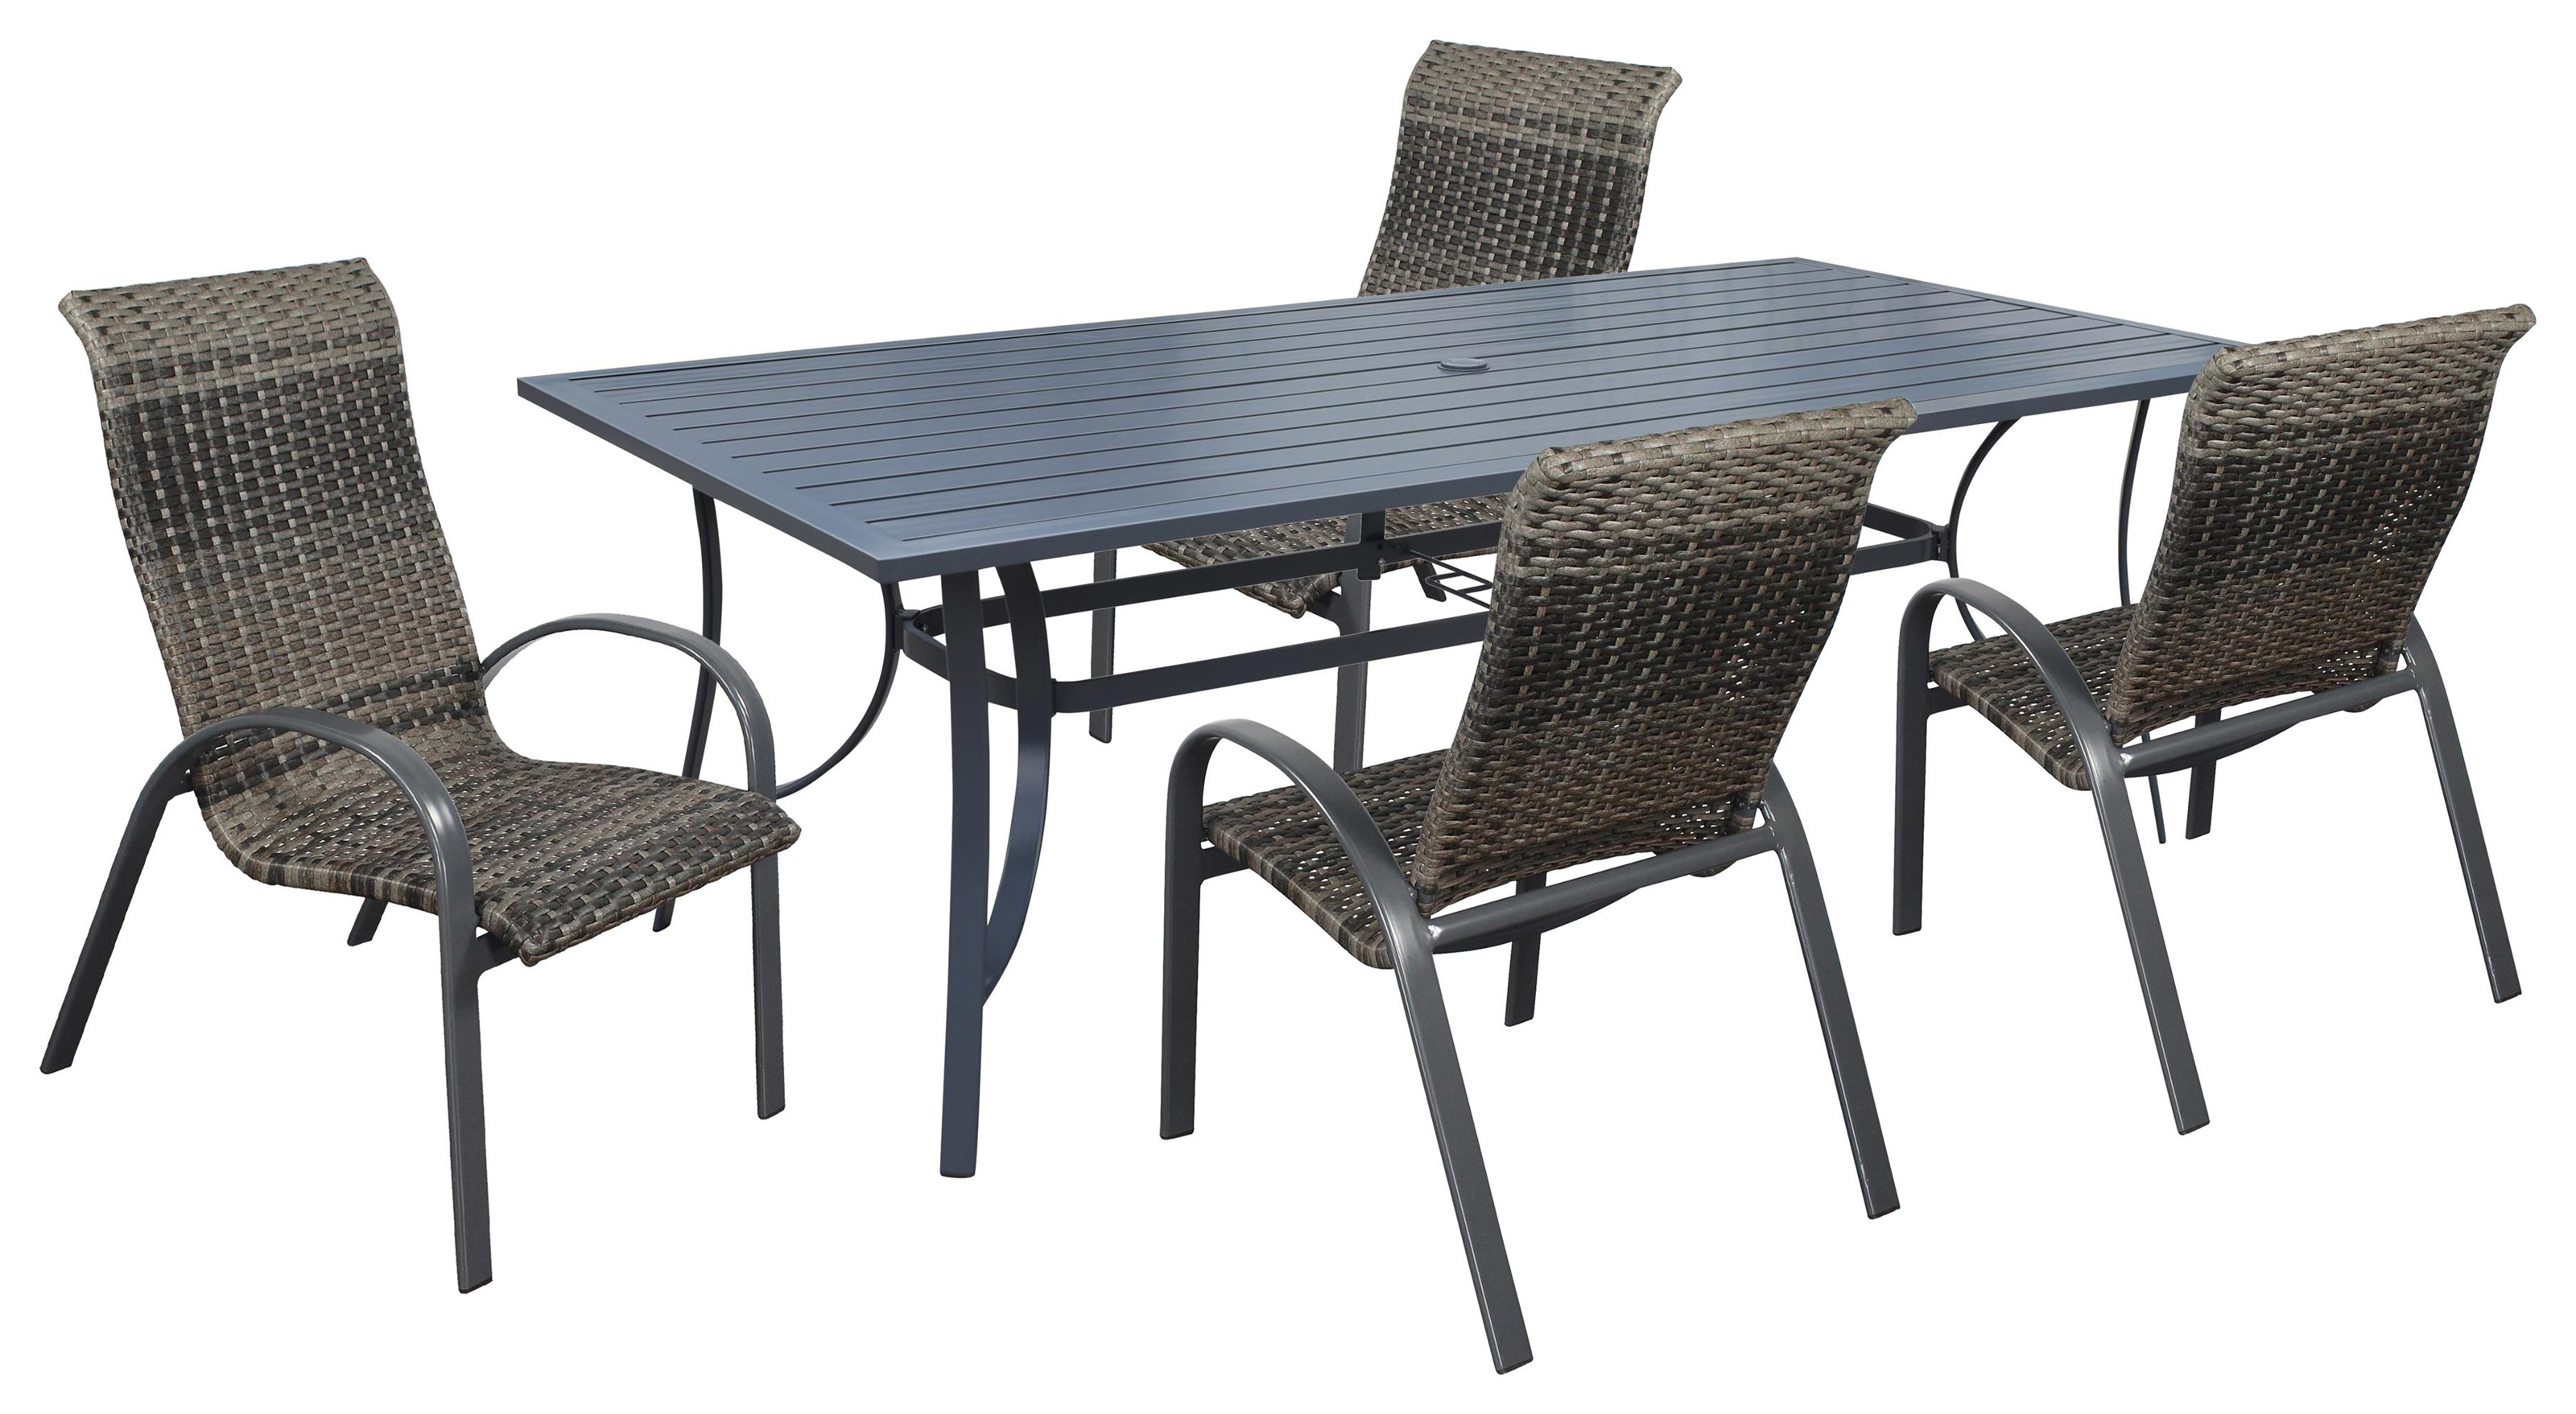 Portside Wicker Table and 4 Chairs by Kingston Casual at Johnny Janosik